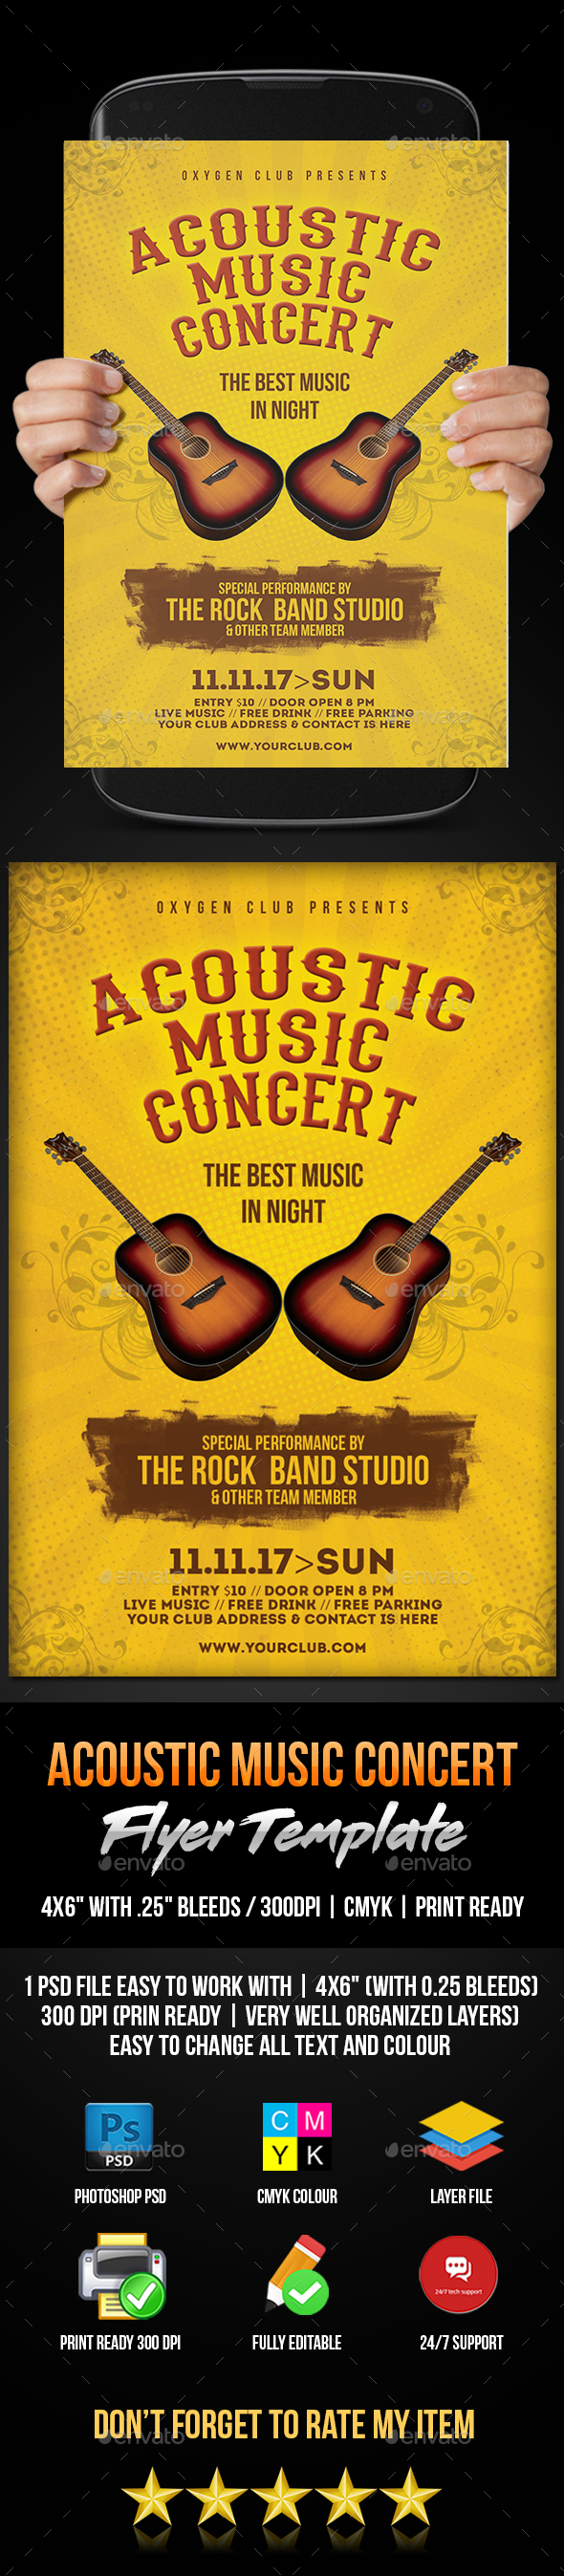 Acoustic Music Concert Flyer - Flyers Print Templates